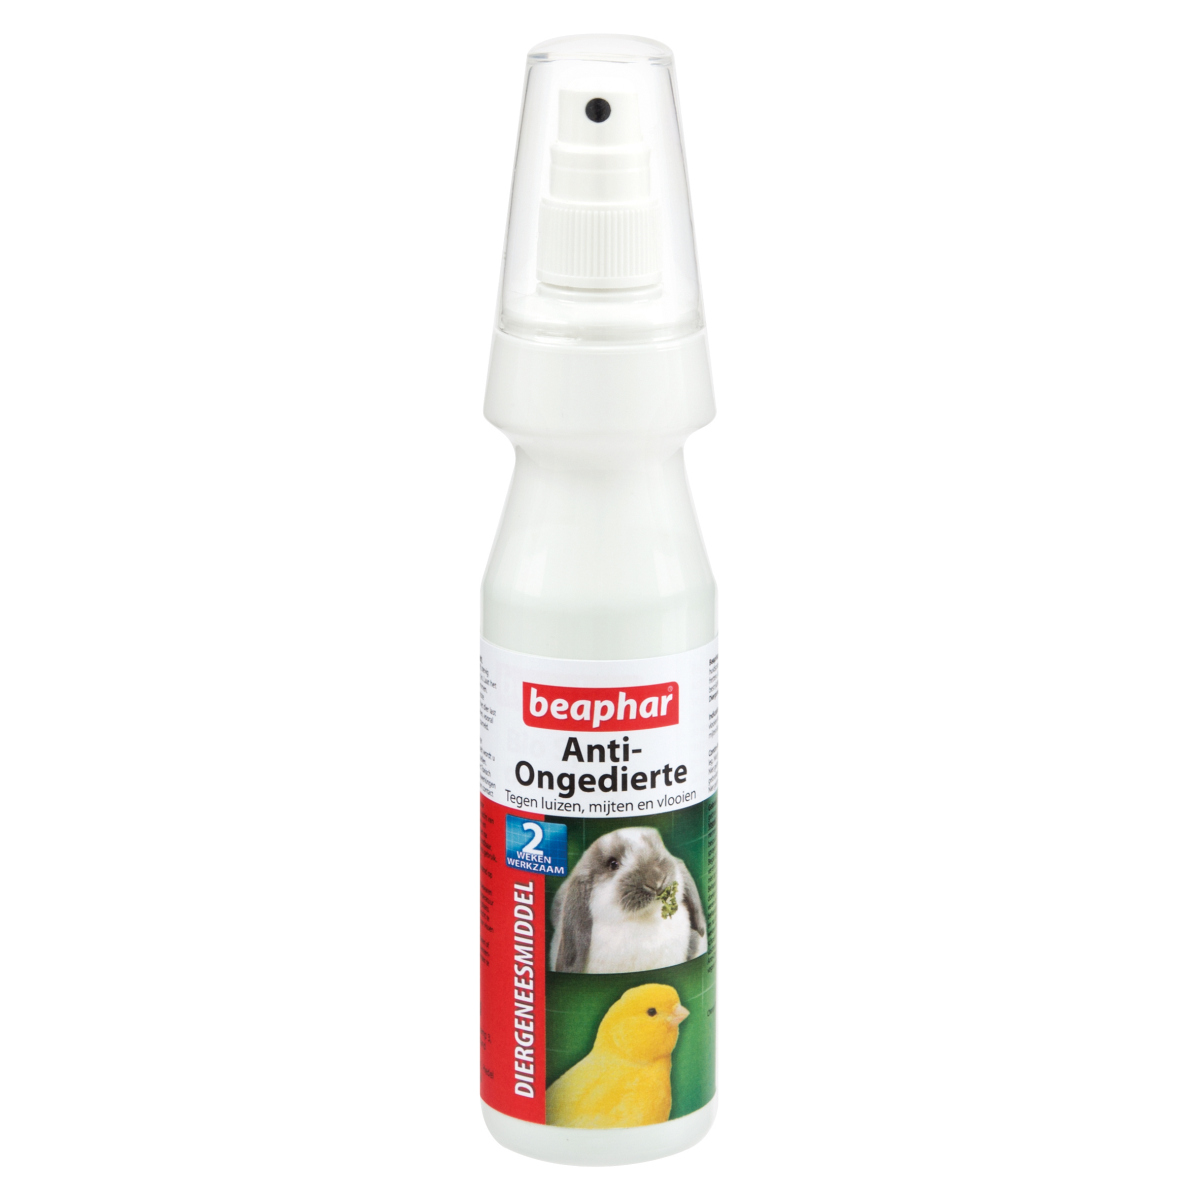 Anti ongediertespray meerkleurig 150 ml